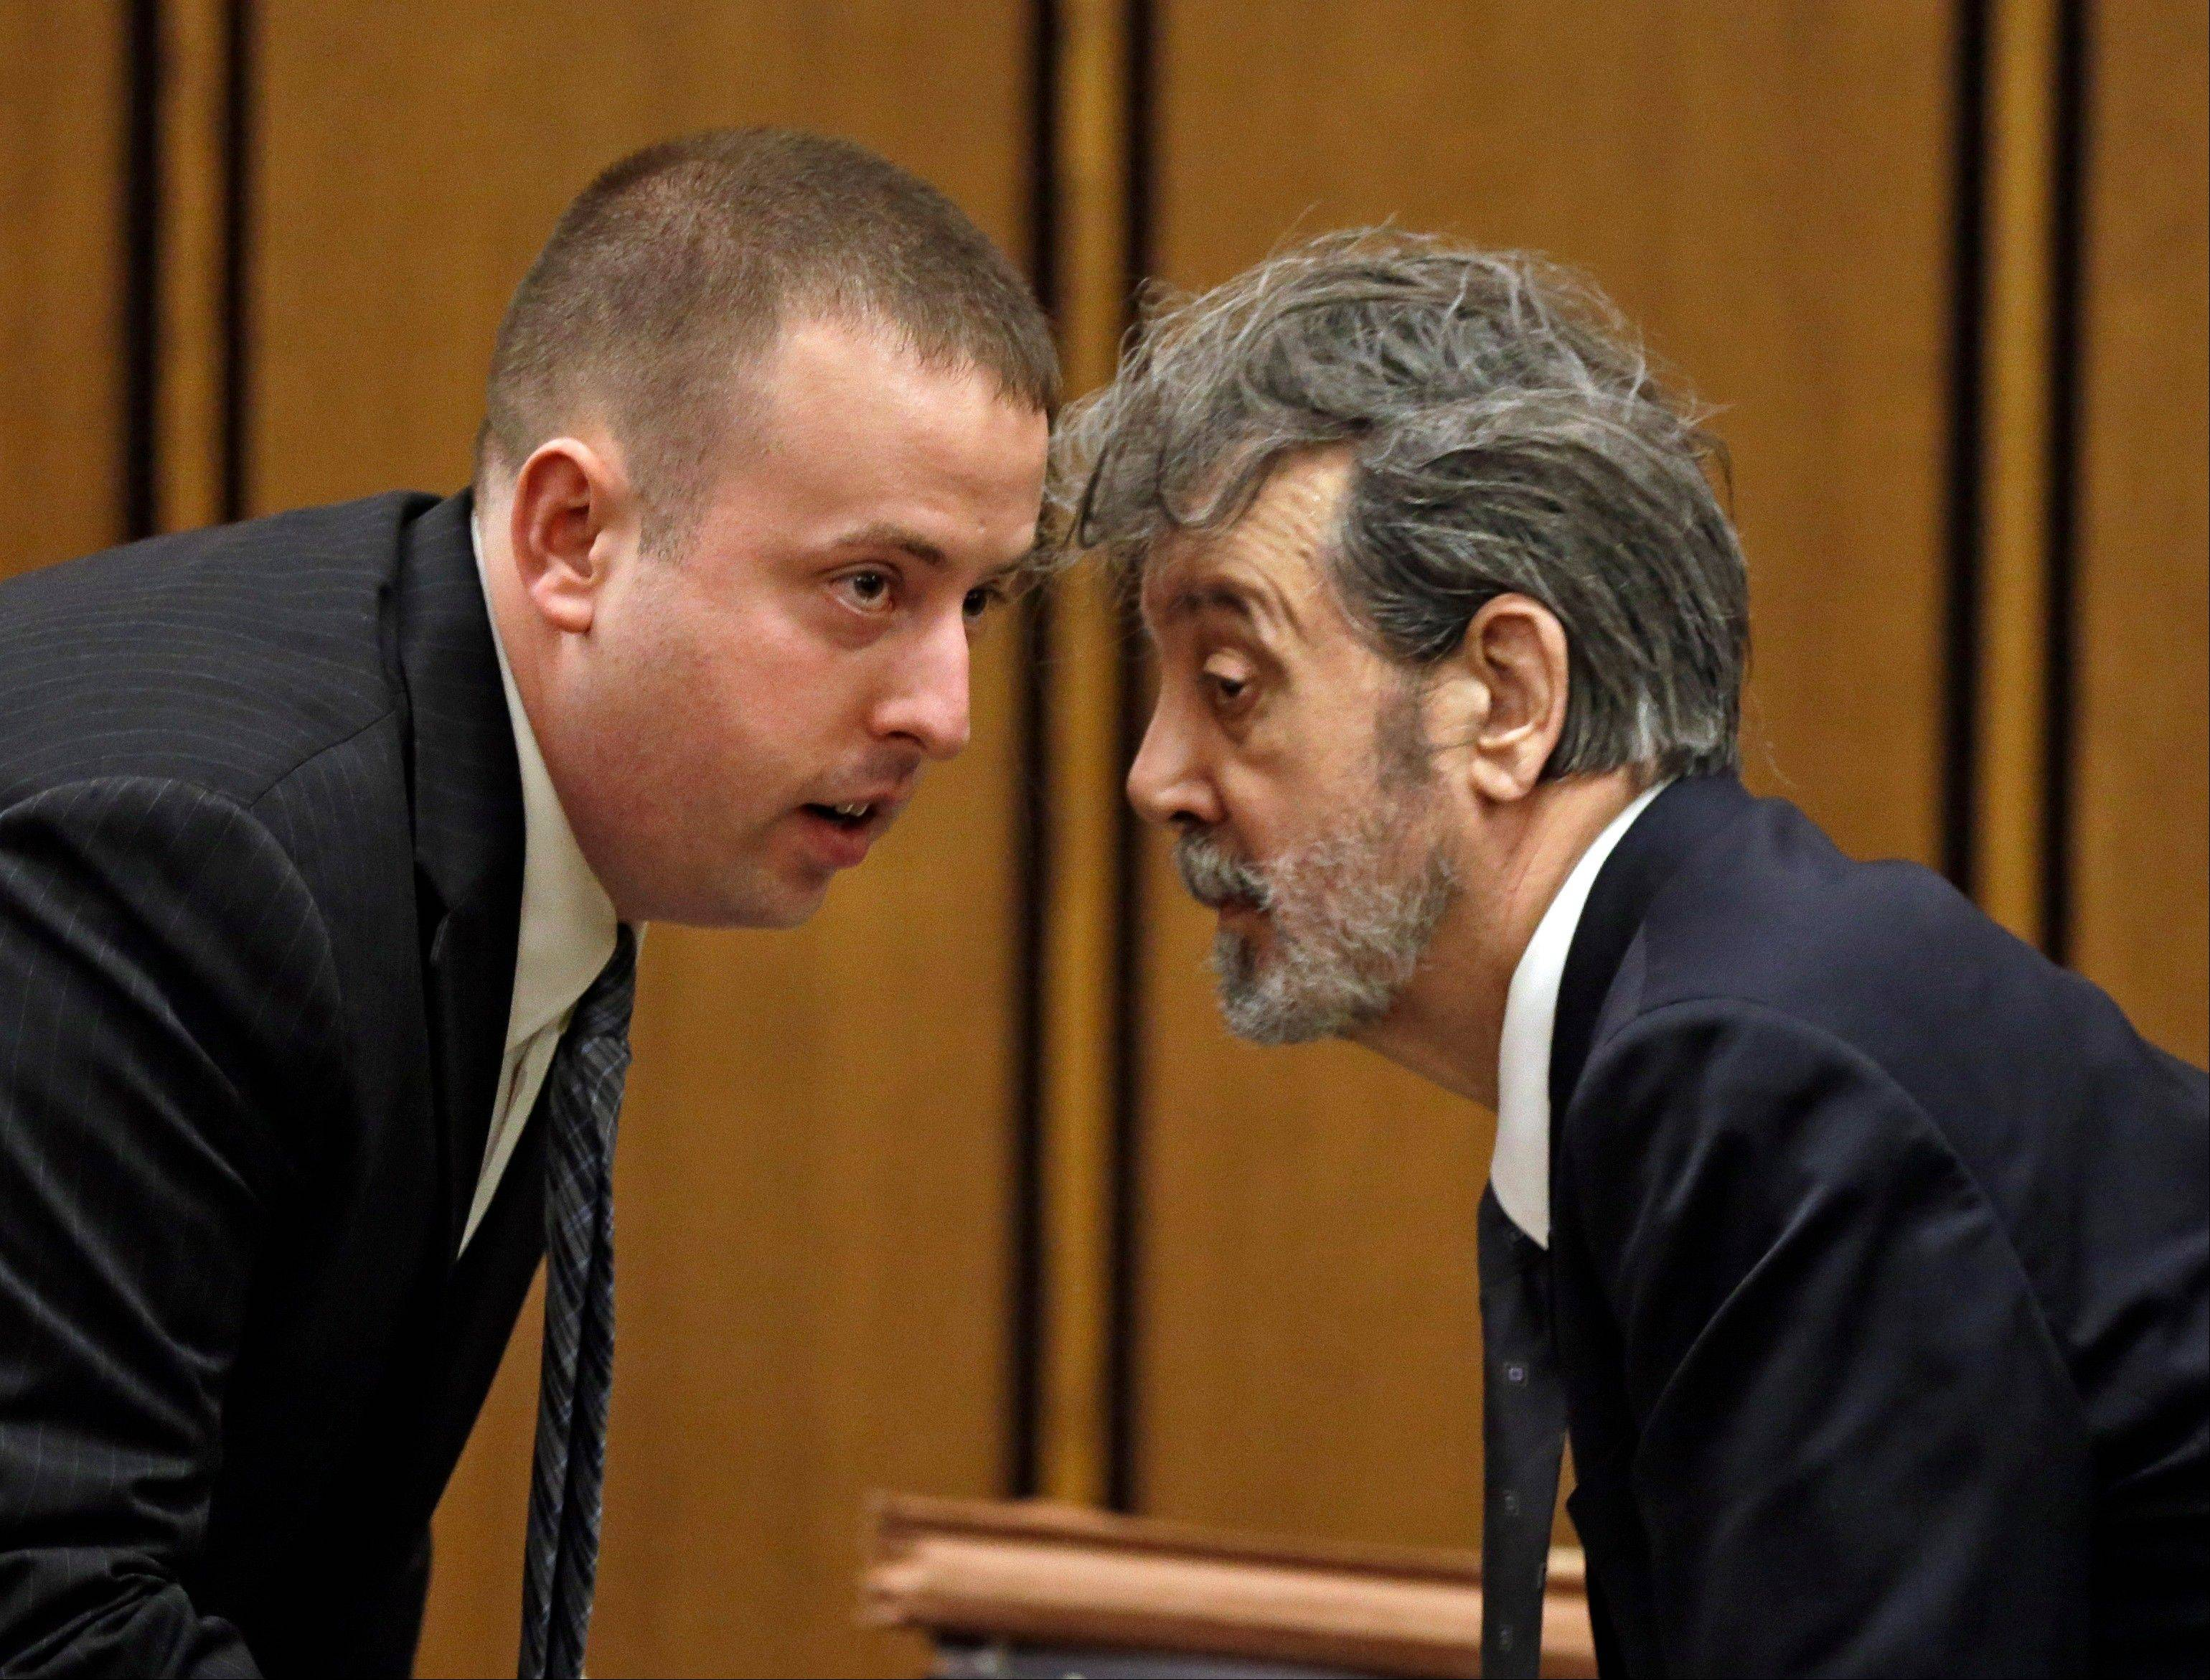 The man who calls himself Bobby Thompson, right, talks with defense attorney Joseph Patituce during opening arguments in court in Cleveland Monday, Oct. 7, 2013. Thompson, 67, who authorities have identified as John Donald Cody, is charged with masterminding a $100 million multistate fraud under the guise of helping Navy veterans.